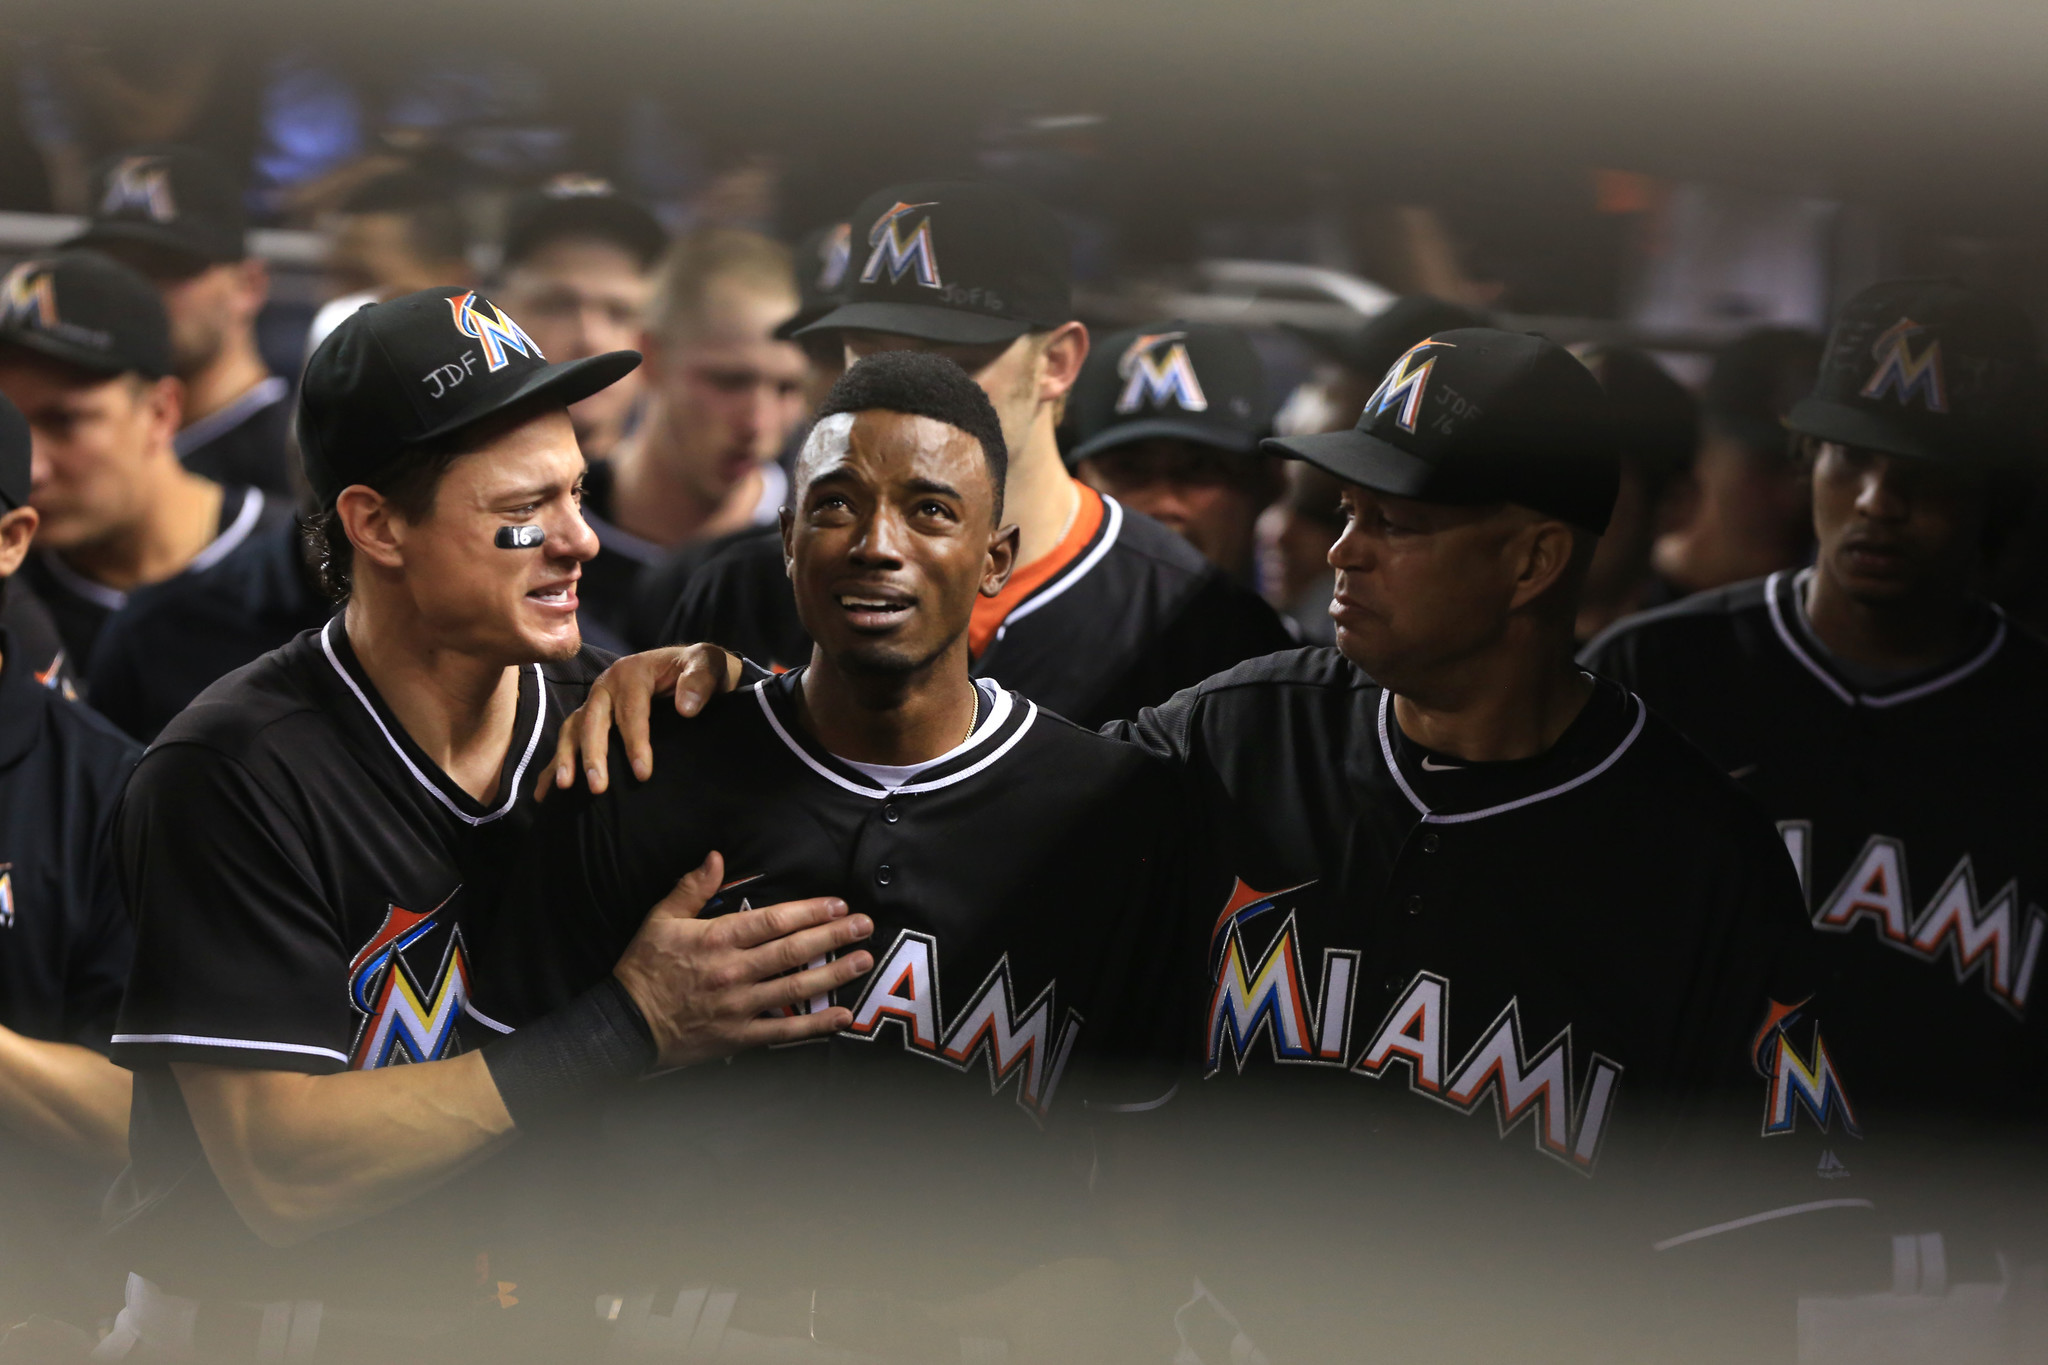 784215c62 Somber tribute to fallen Marlins pitcher made possible by Majestic s Lehigh  Valley plant - The Morning Call